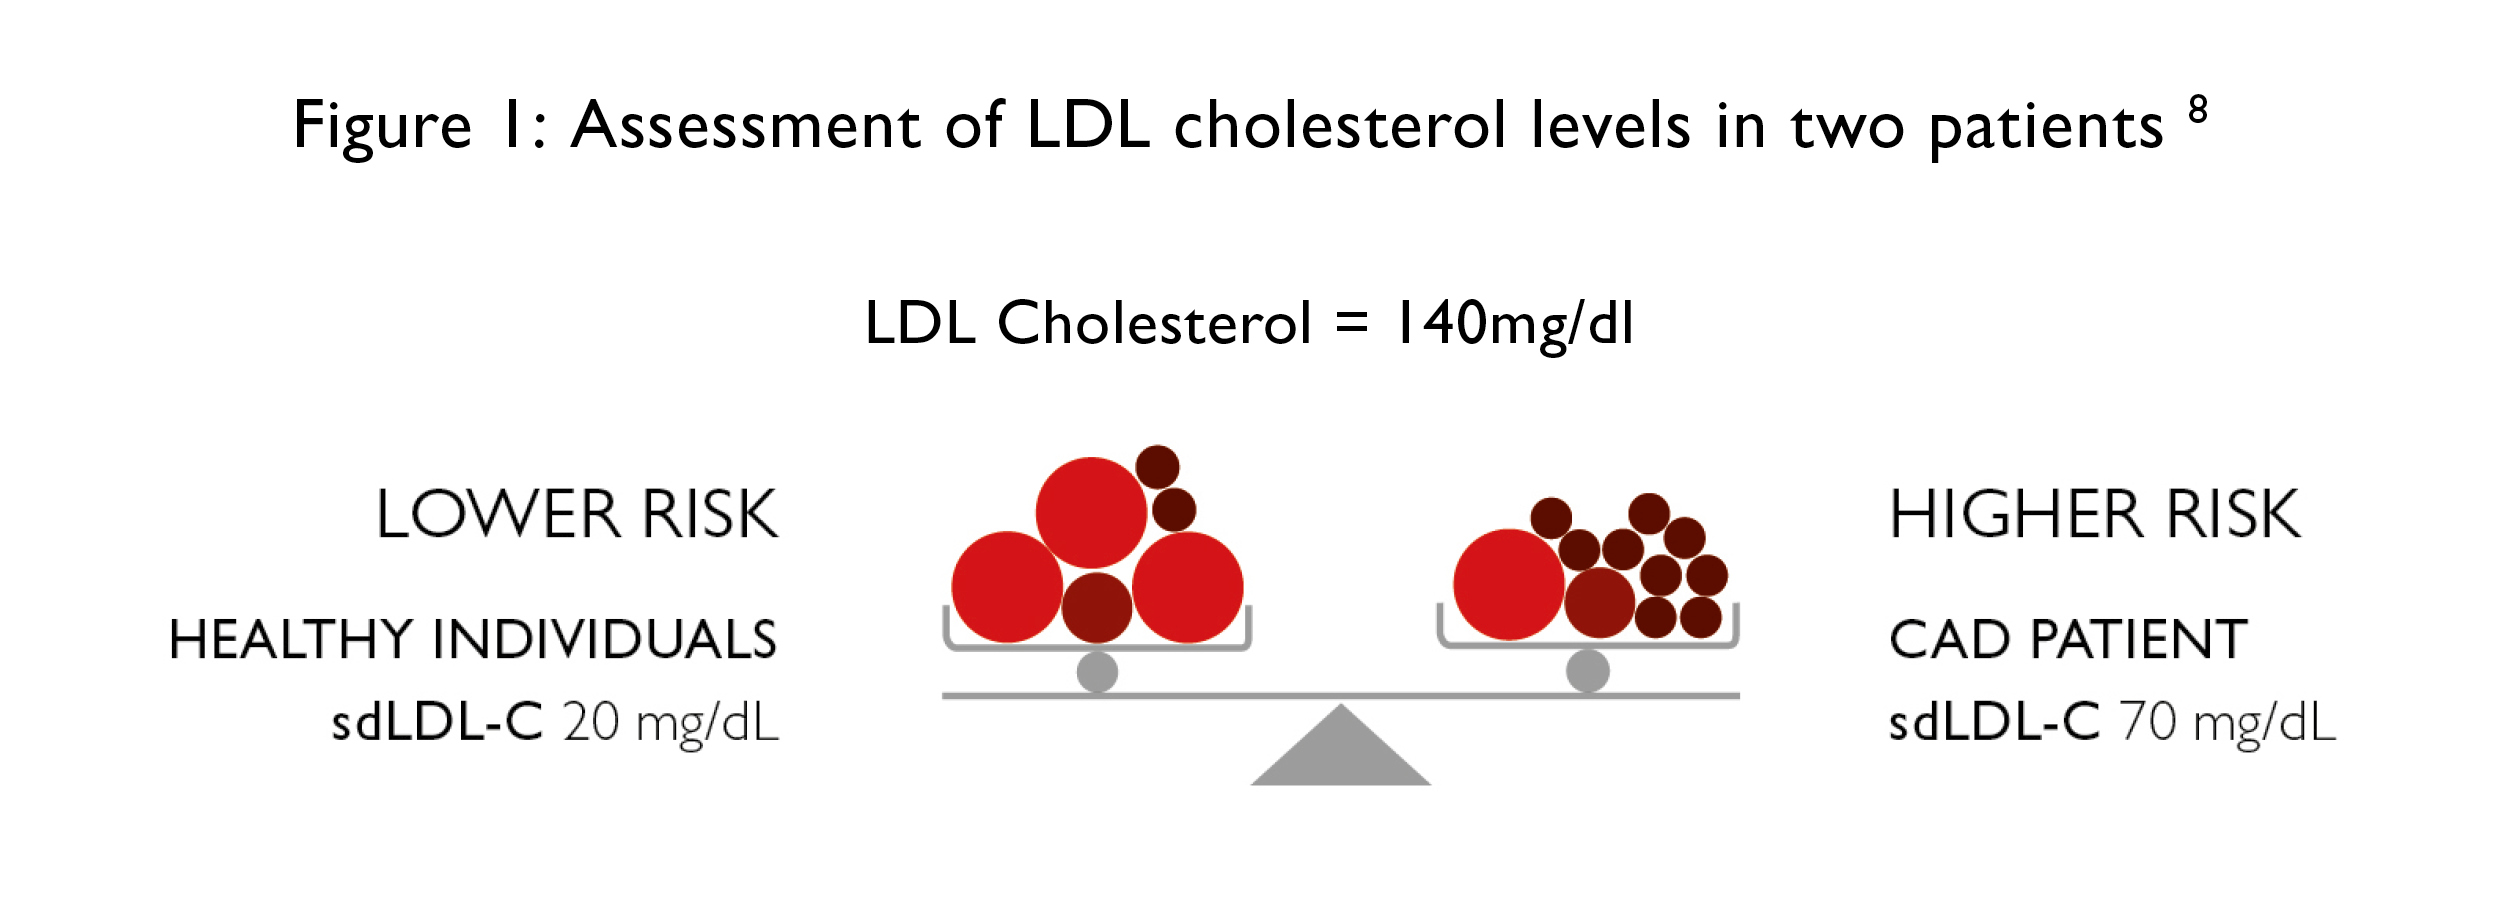 Assessment of LDL cholesterol levels in two patients (Photo courtesy of Randox).